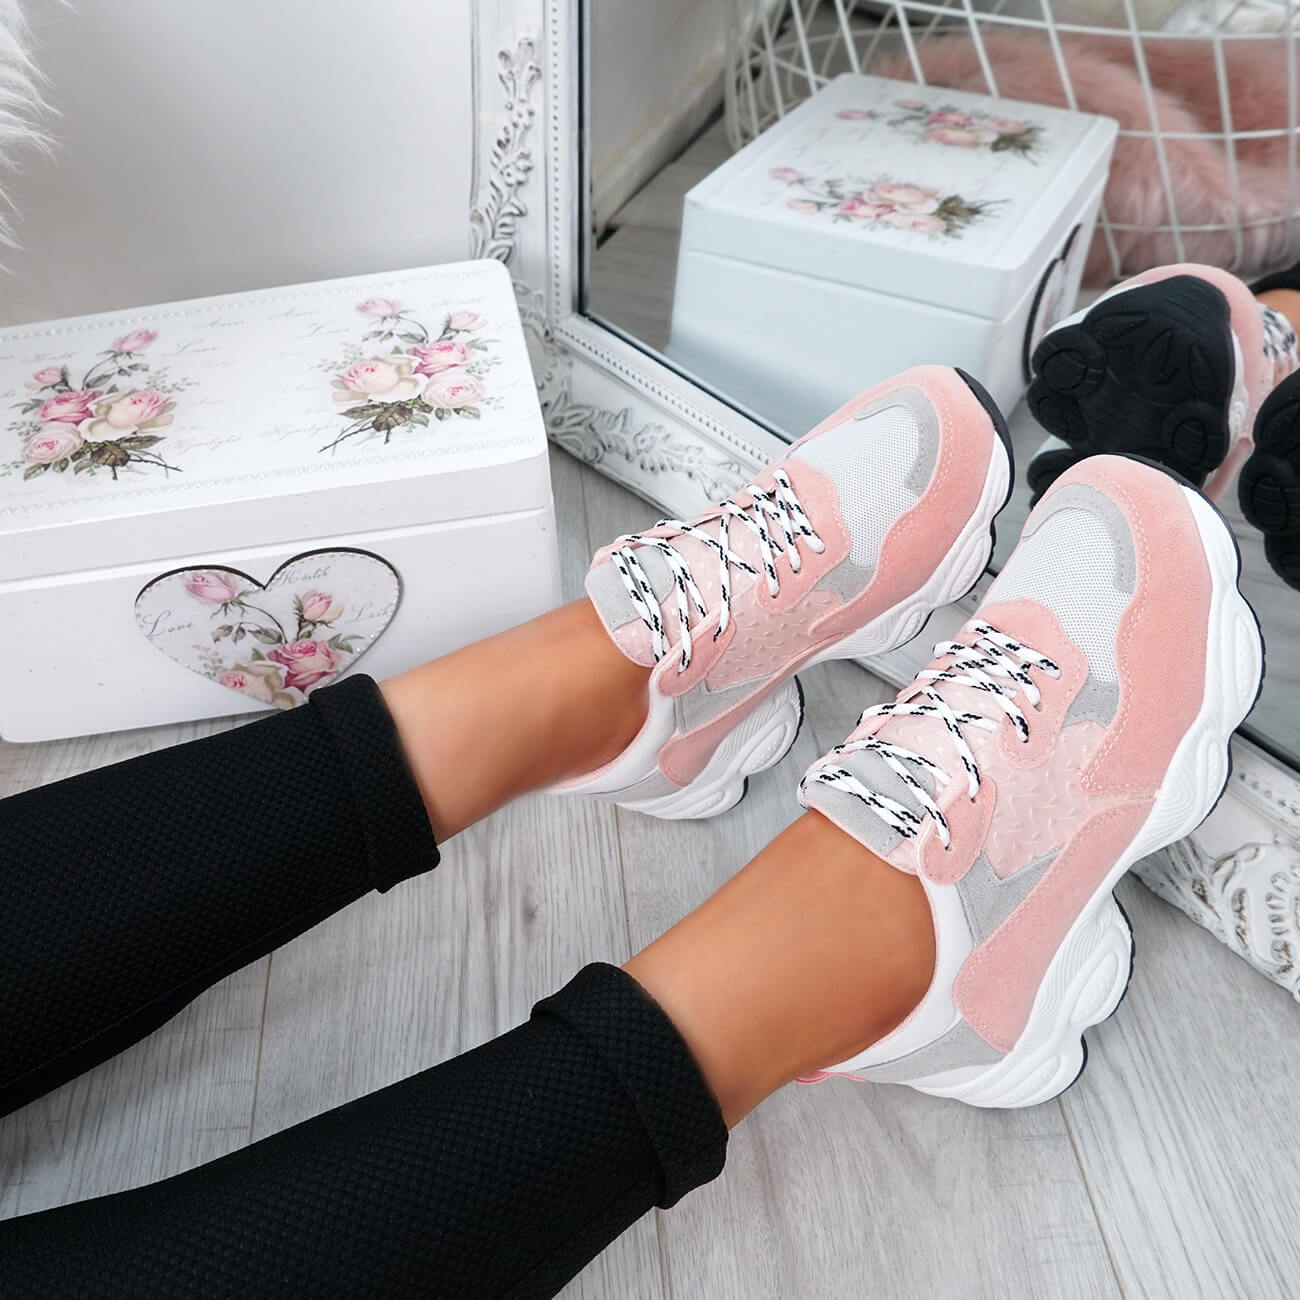 WOMENS-LADIES-RUNNING-GYM-CHUNKY-TRAINERS-SNEAKERS-SHOES-SIZE miniatura 16